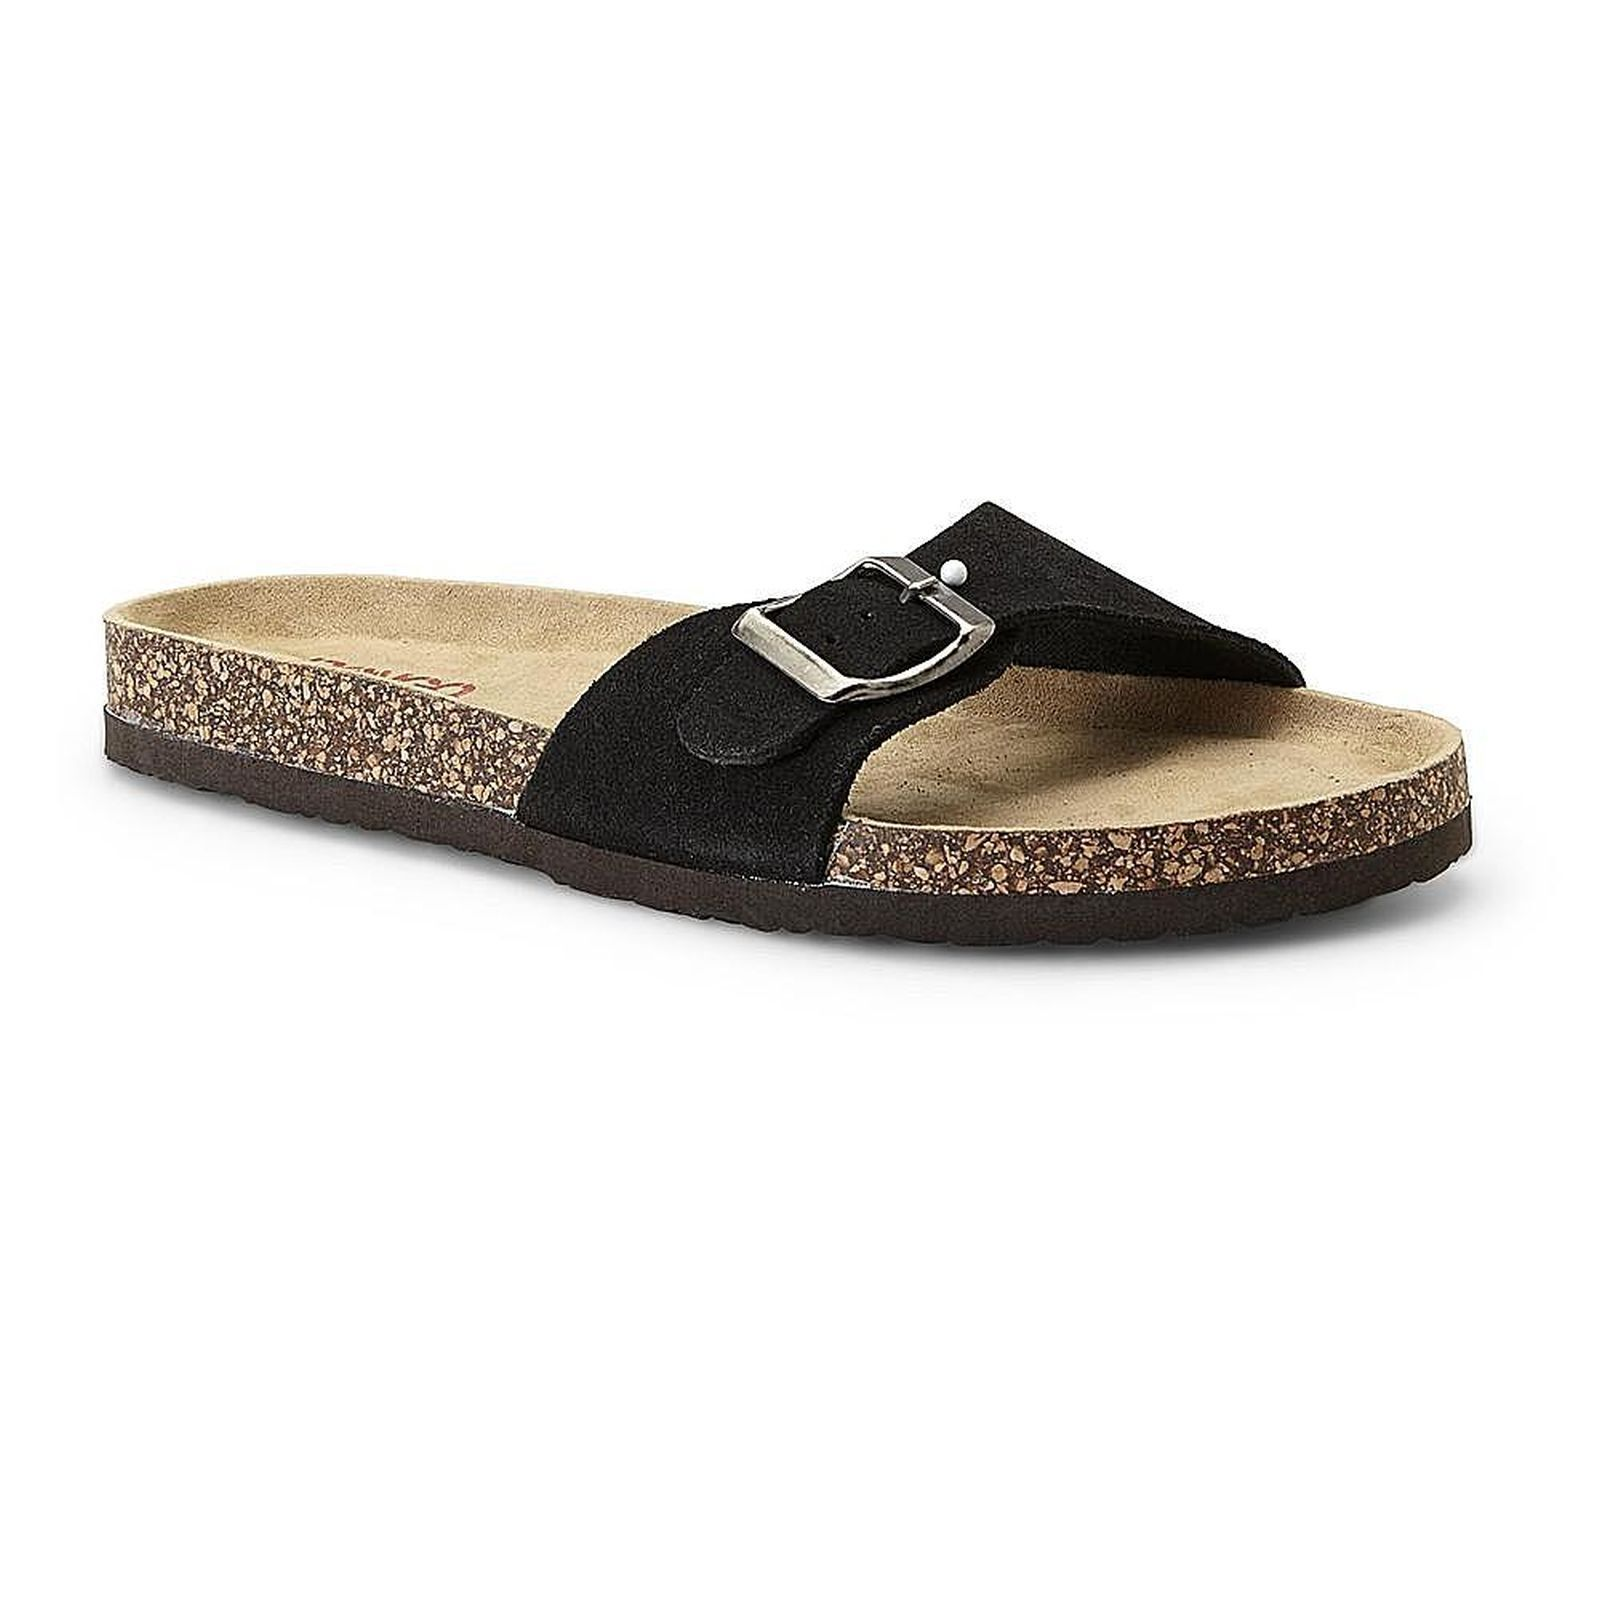 New! Strapped Womens Suede Strapped New! Slide Sandal-Black KL 199A-E d66c8b